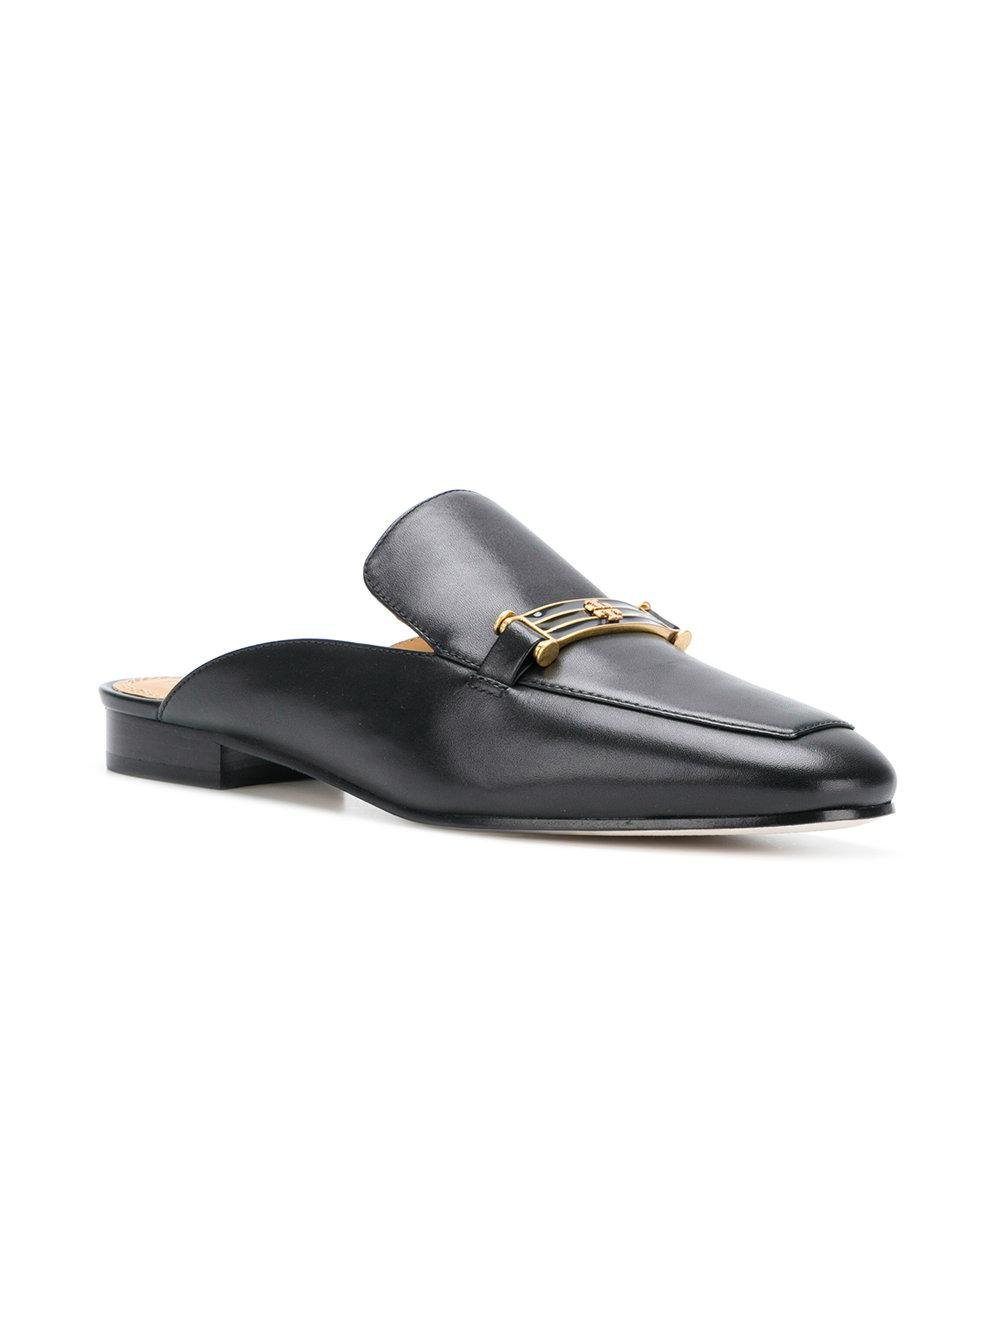 dc8269a41f14 Tory Burch Amelia Slippers in Black - Save 73% - Lyst